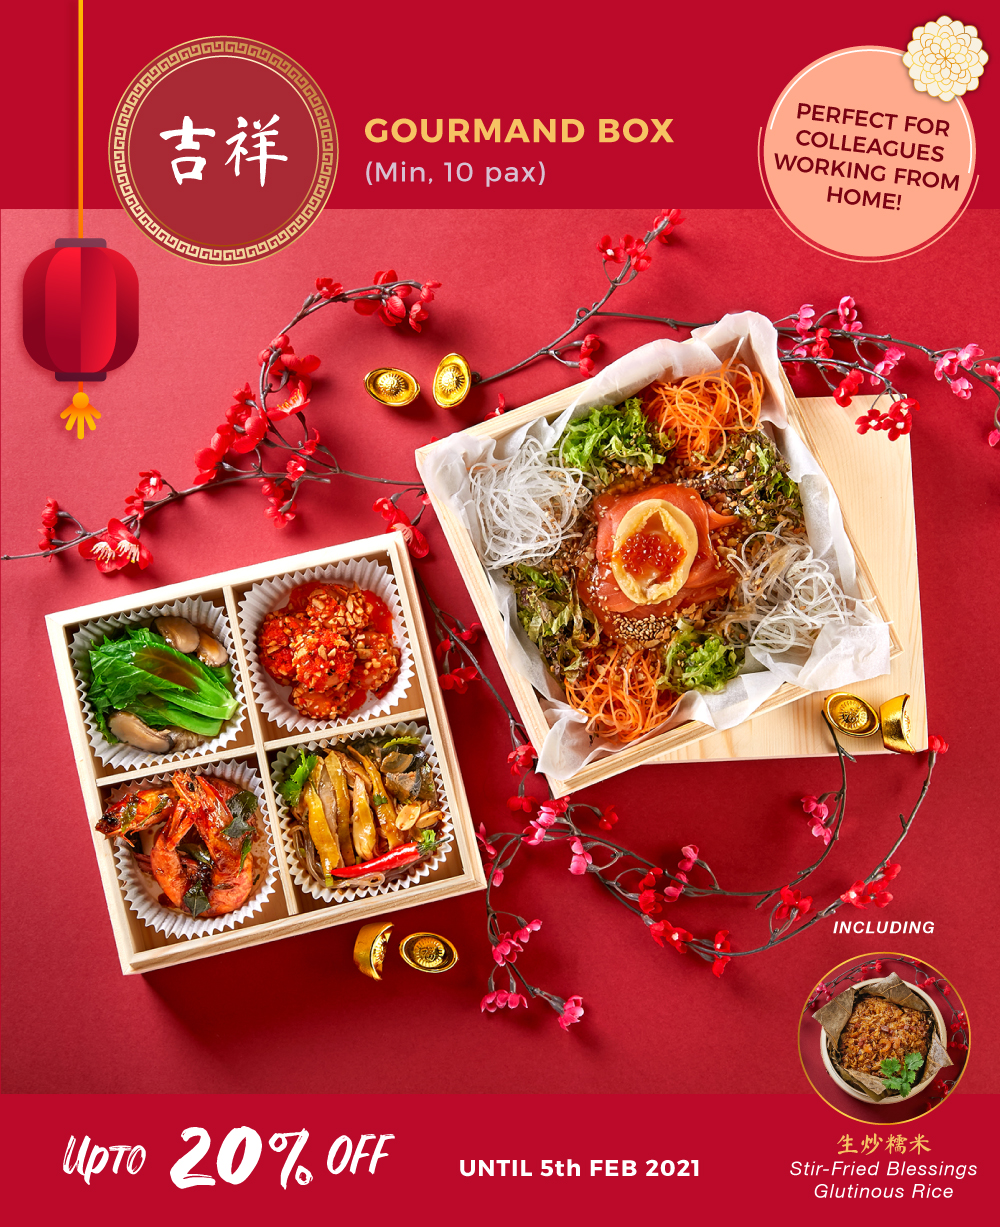 Special promotion for cny feast gourmand box for min 10 pax up to 20% off until 5 feb 2021